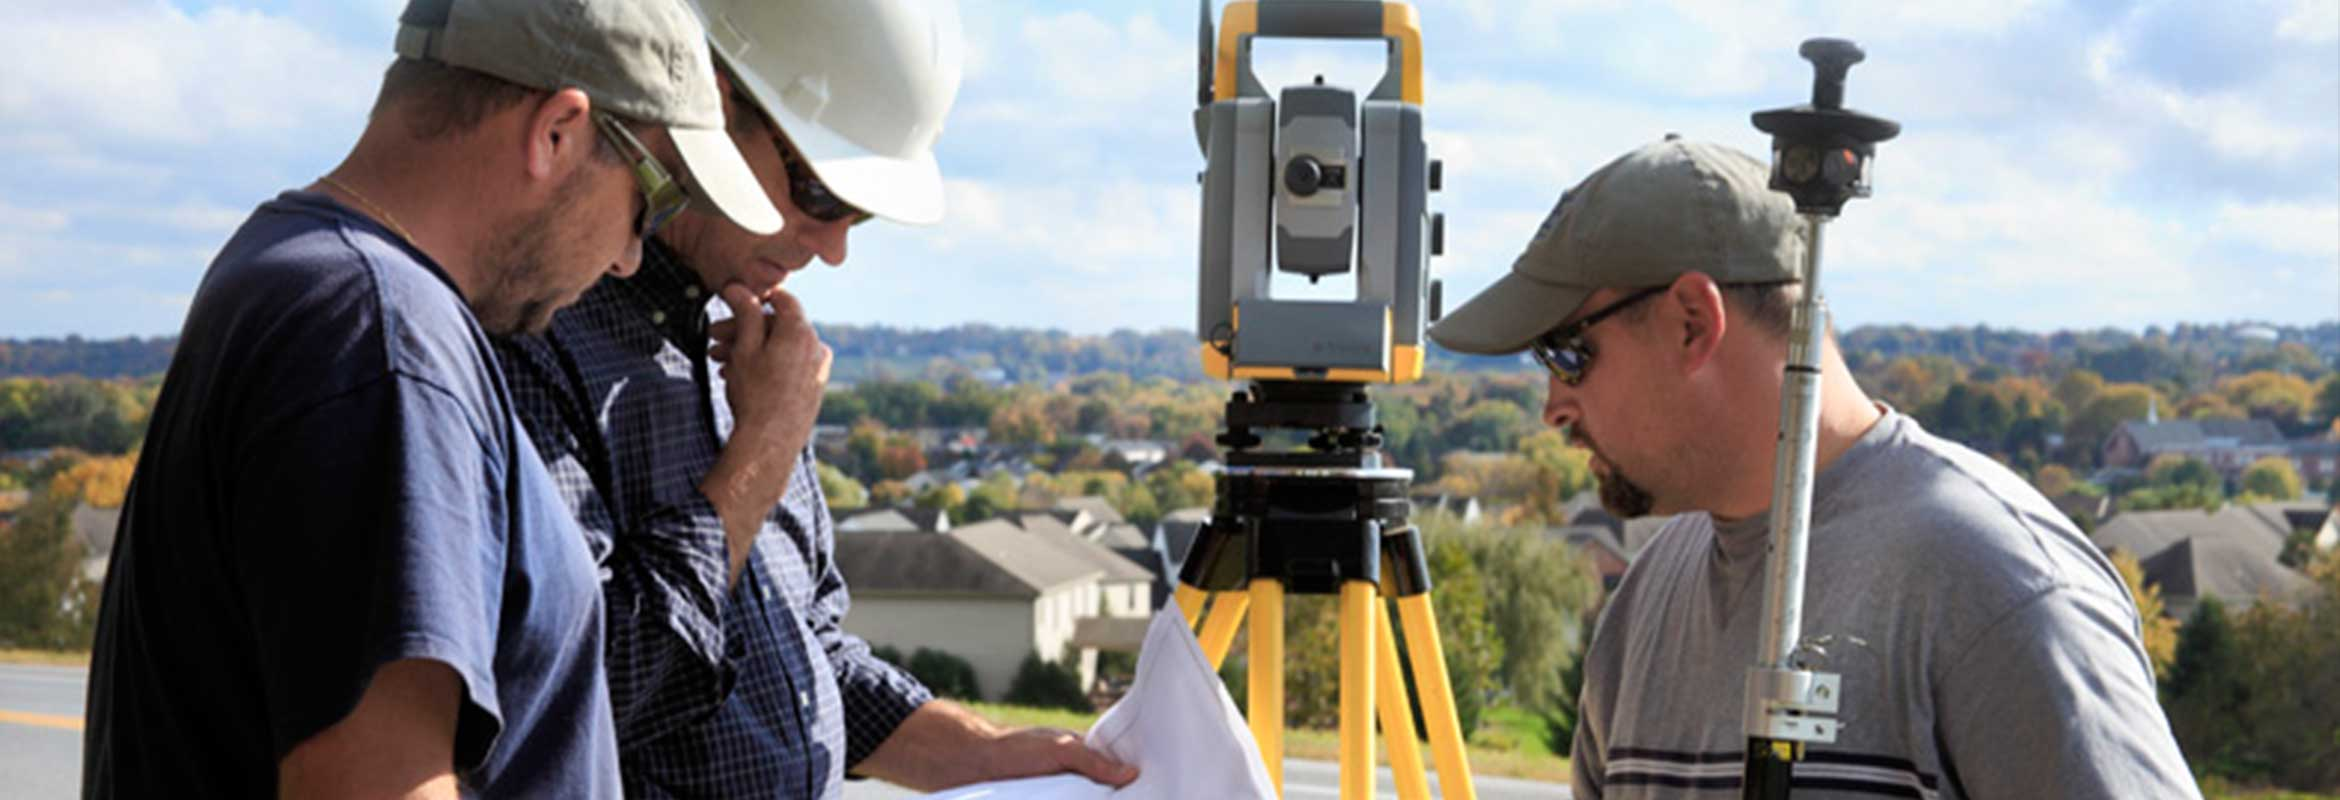 Land Grant Surveyors Services throughout PA, MD, NJ, DE